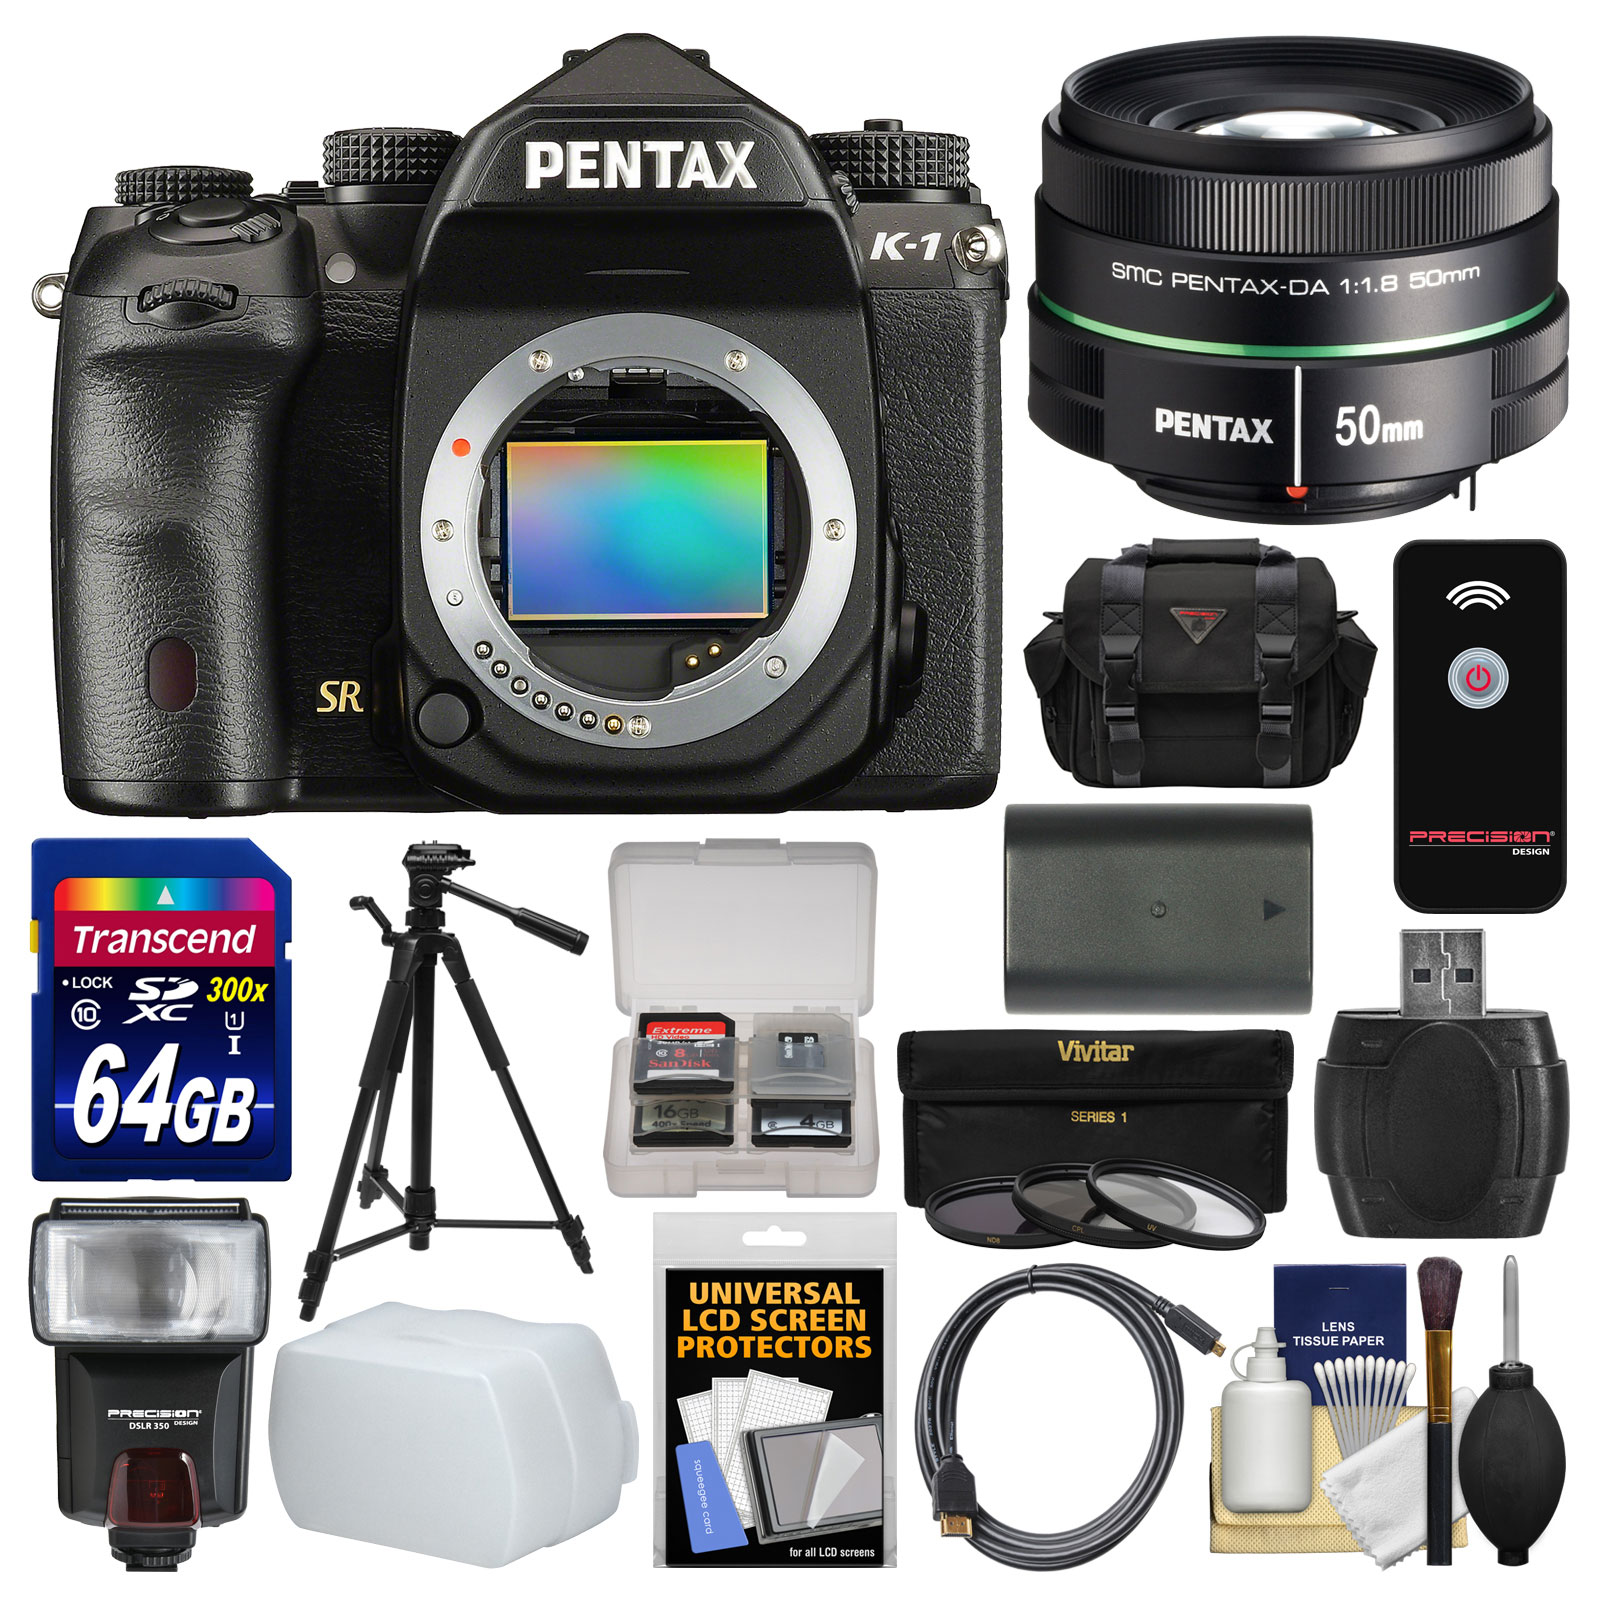 Pentax K-1 Full Frame Wi-Fi Digital SLR Camera Body with 50mm f 1.8 Lens + 64GB Card + Case + Flash + Battery... by Pentax